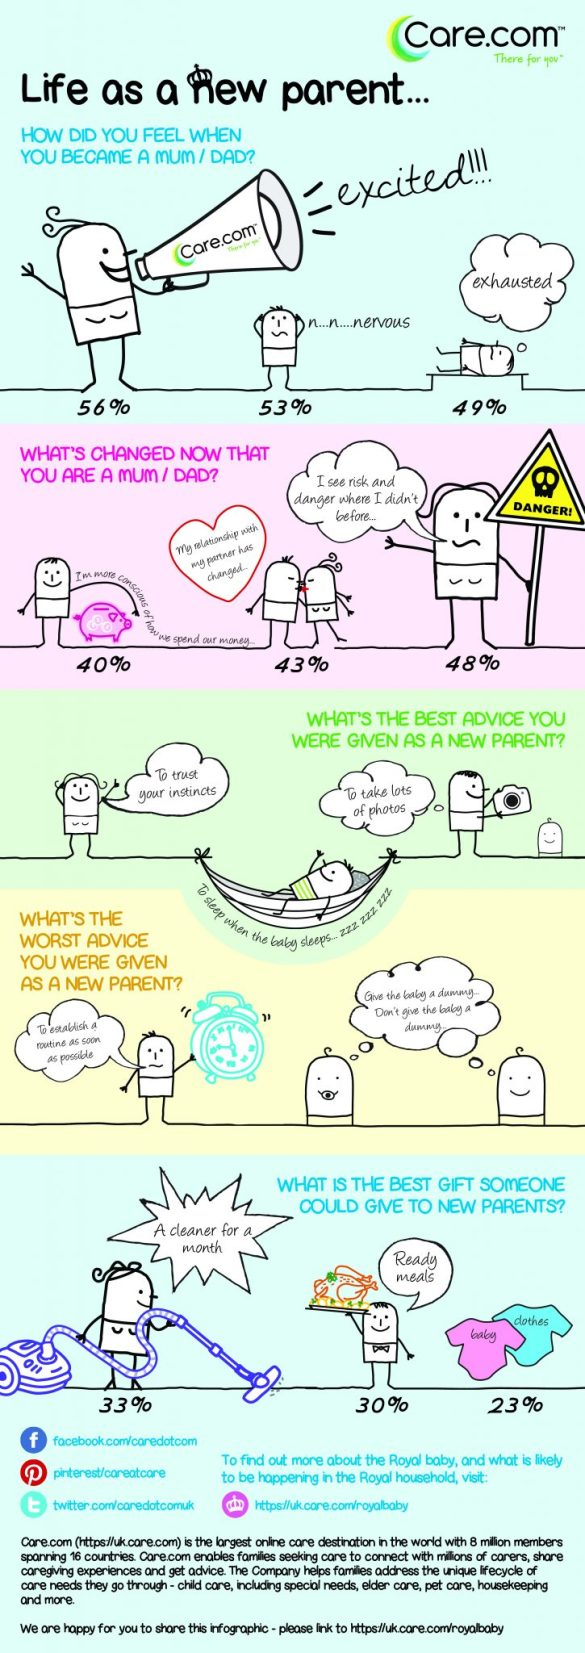 Life as a new parent infographic